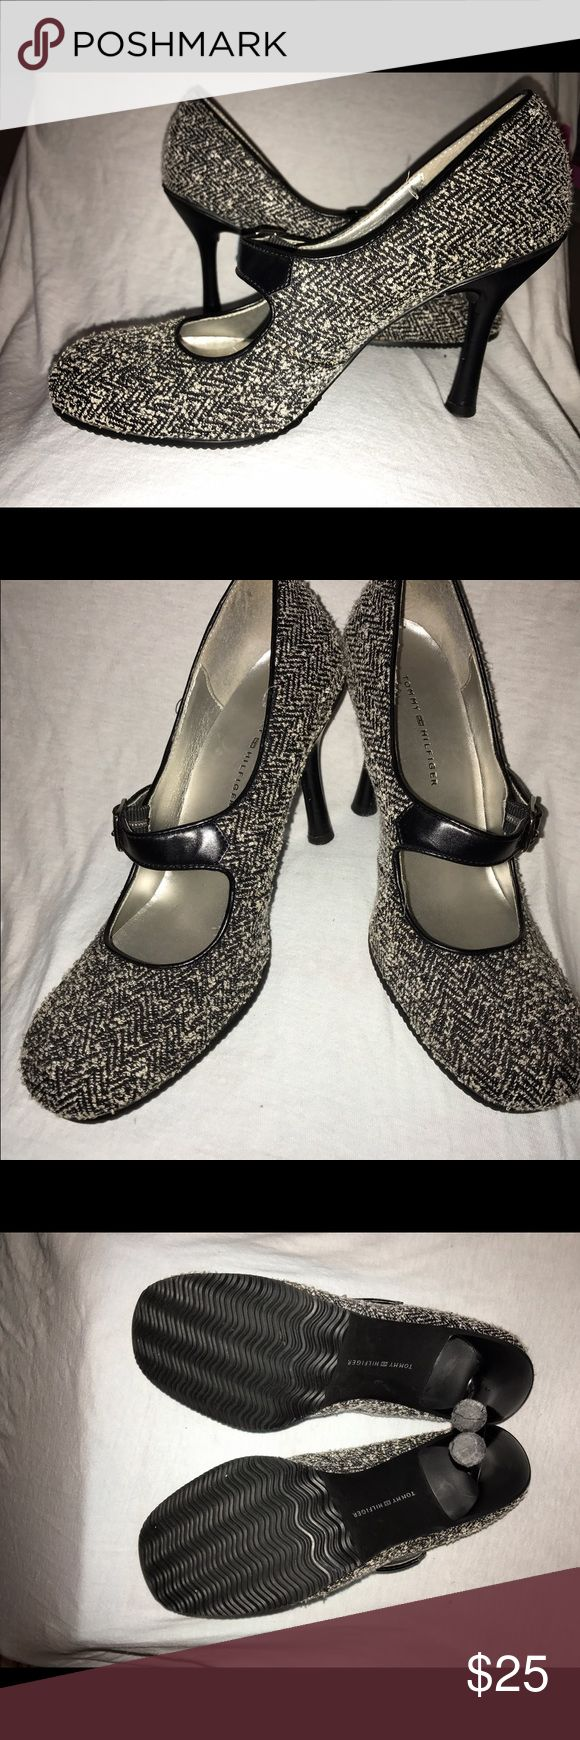 """Tommy Hilfiger Mary Jane SZ 7 Gently Worn! Tommy Hilfiger Mary Jane SZ 7 Gently Worn w no signs of wear on top of shoes or soles w only visible signs on heels! This is a fabric/tweed type material. Round toe makes it extremely comfortable 4"""" heel with grip soles! Great w a sweater! Tommy Hilfiger Shoes Heels"""